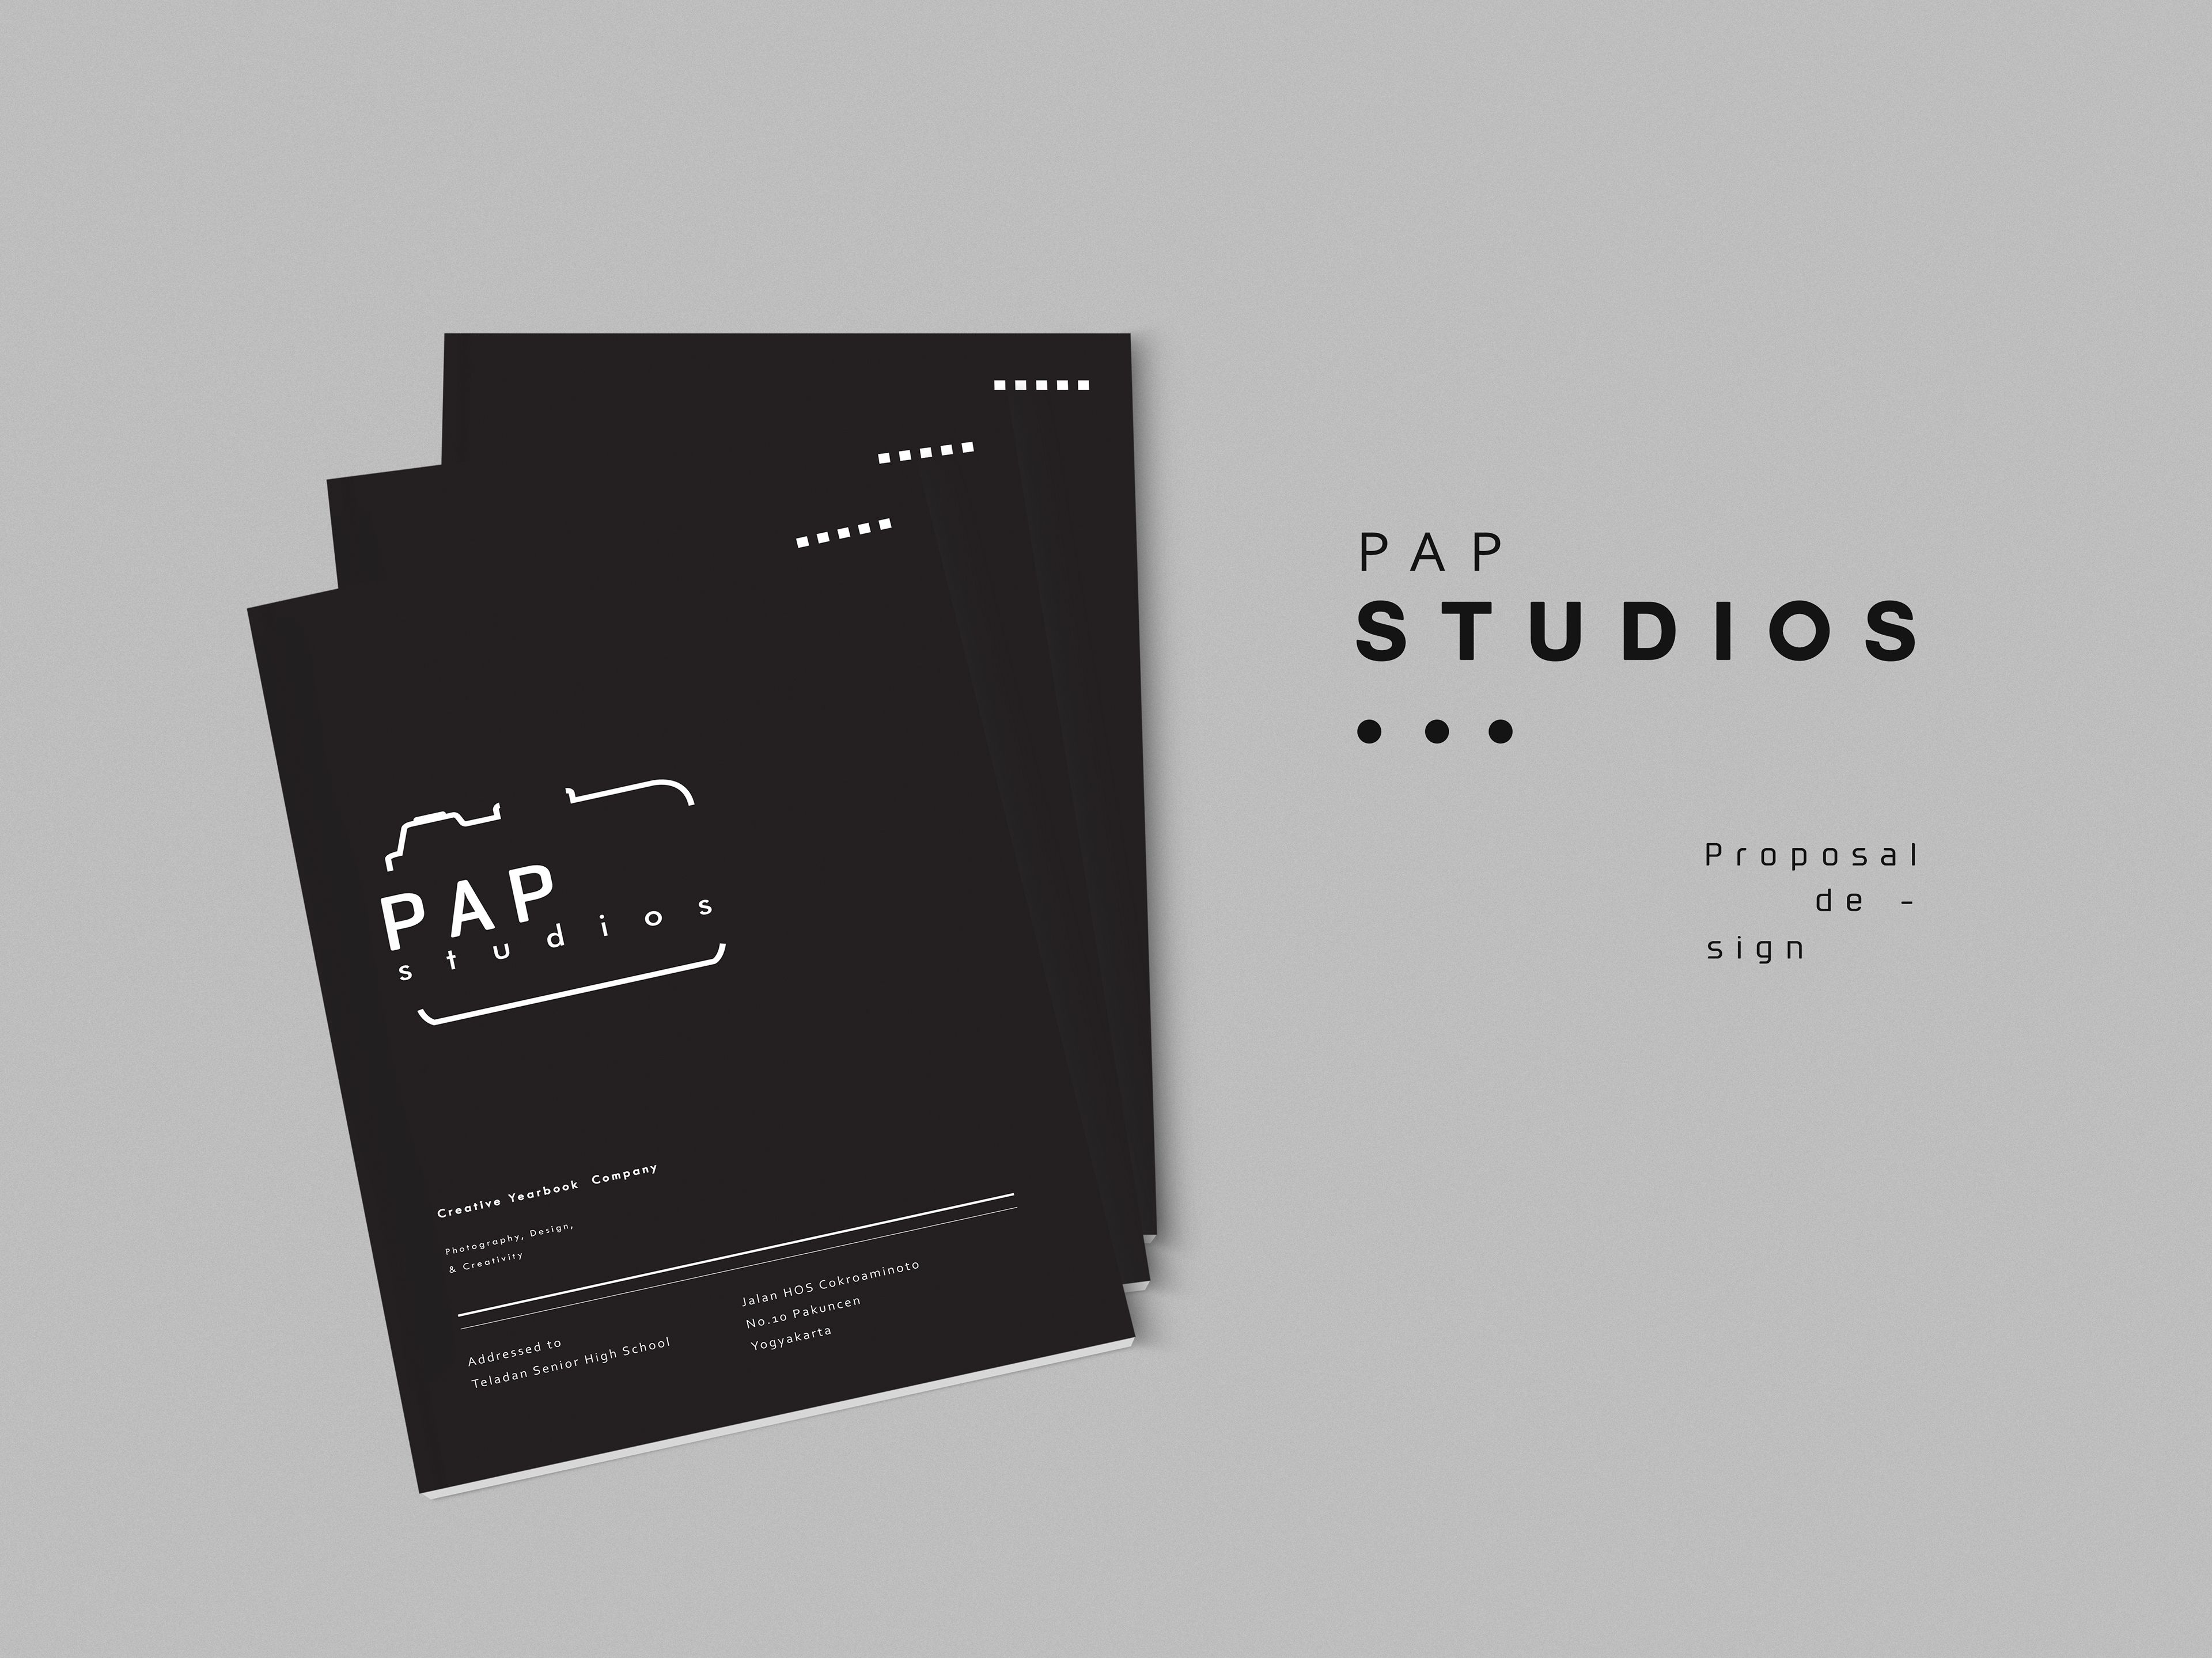 Minimal Work for pap studios created in